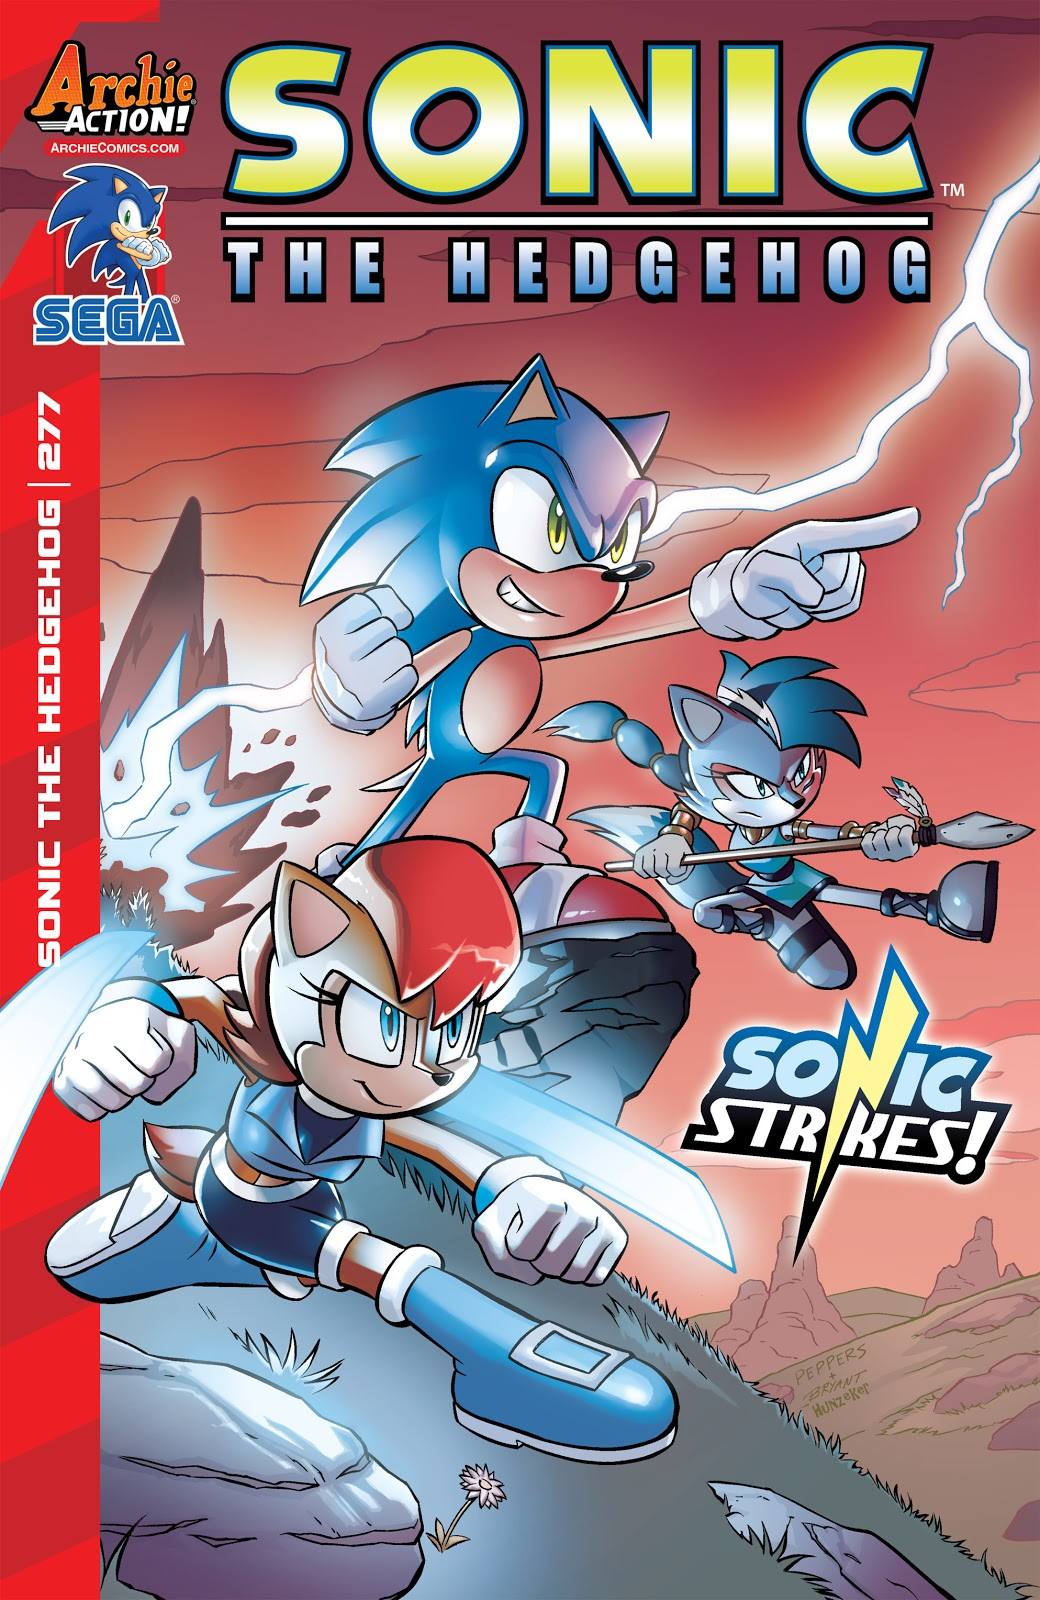 Hedgehogs Can T Swim Sonic The Hedgehog Issue 277